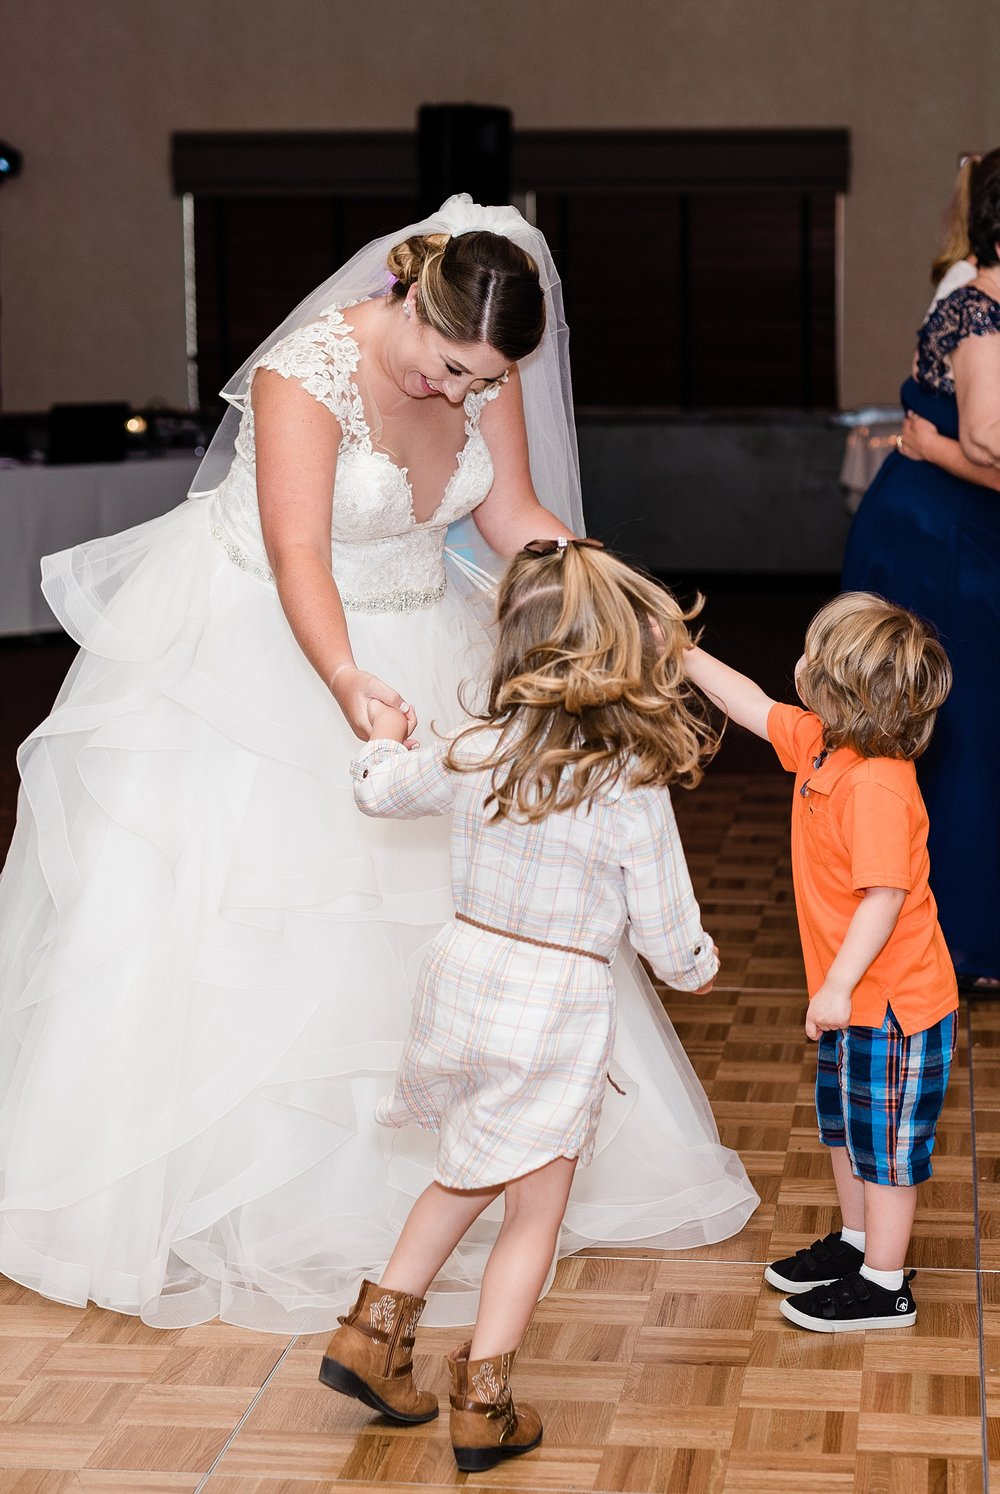 Baurichter Wedding at Stoney Creek Inn Columbia Missouri by Kelsi Kliethermes Photography_0031-1.jpg